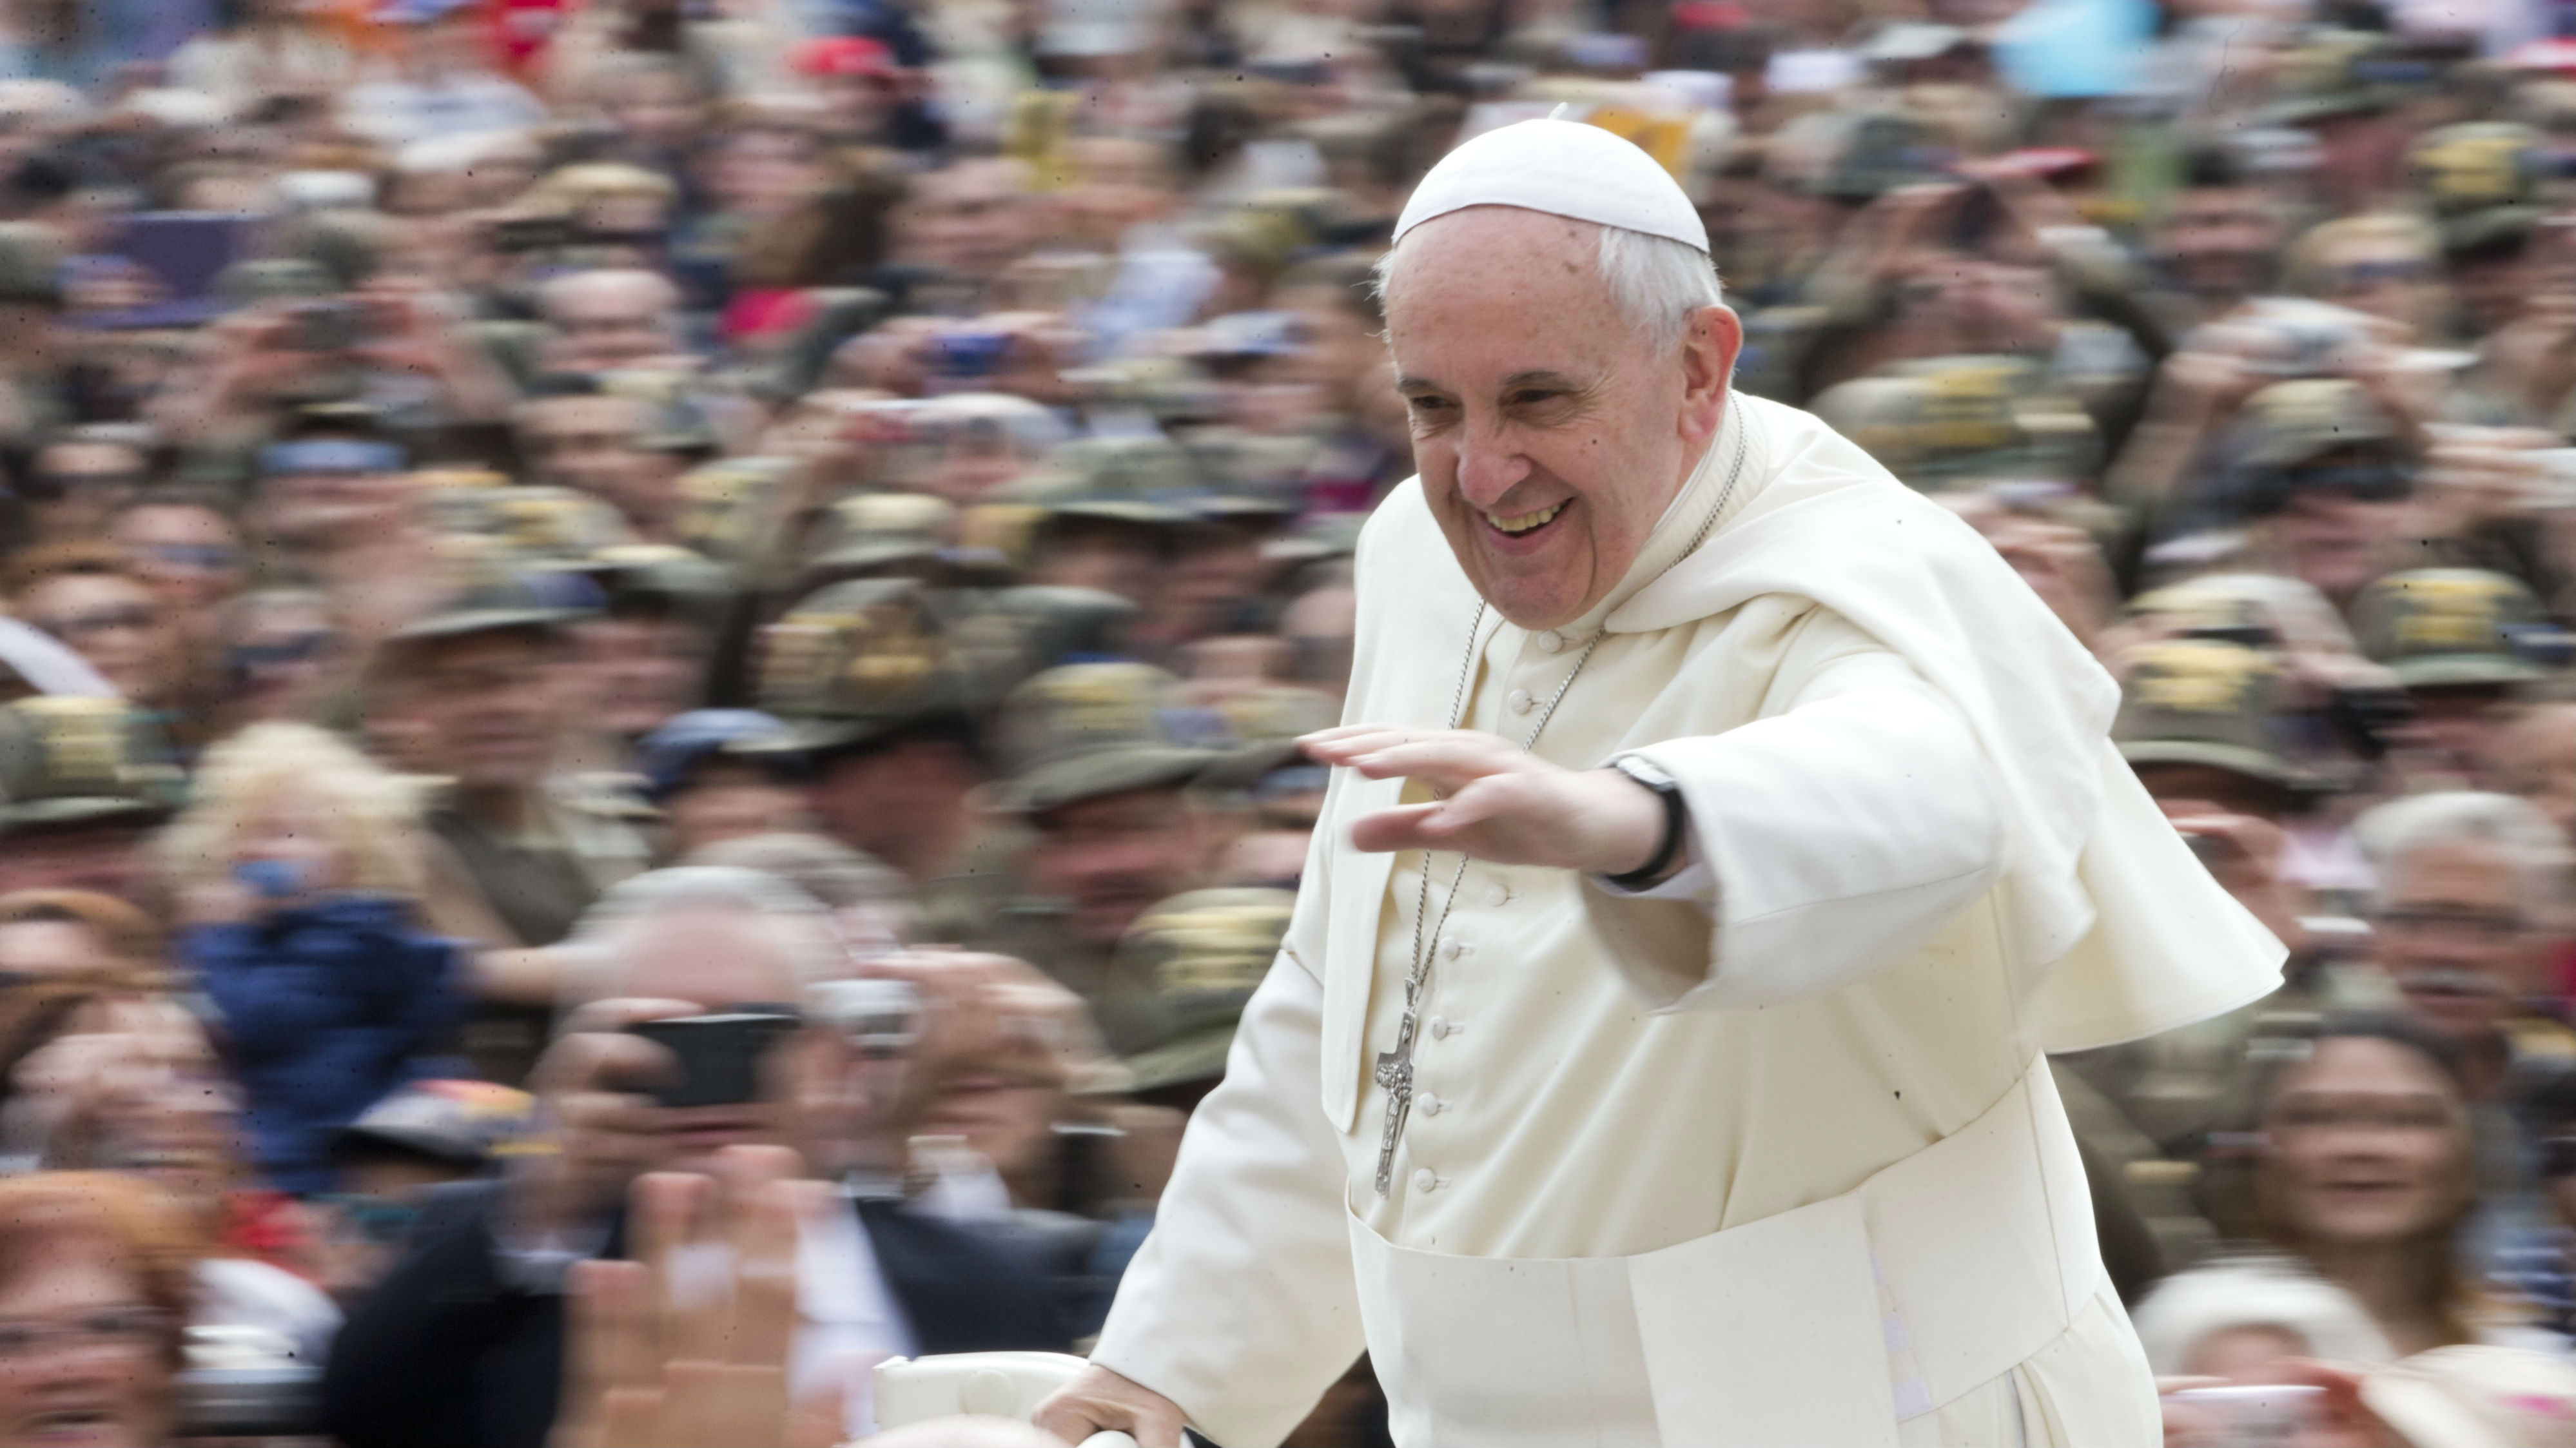 Pope Francis waves as he arrives for his weekly general audience in St. Peter's Square at the Vatican, Wednesday, May 7, 2014. (AP Photo/Alessandra Tarantino)